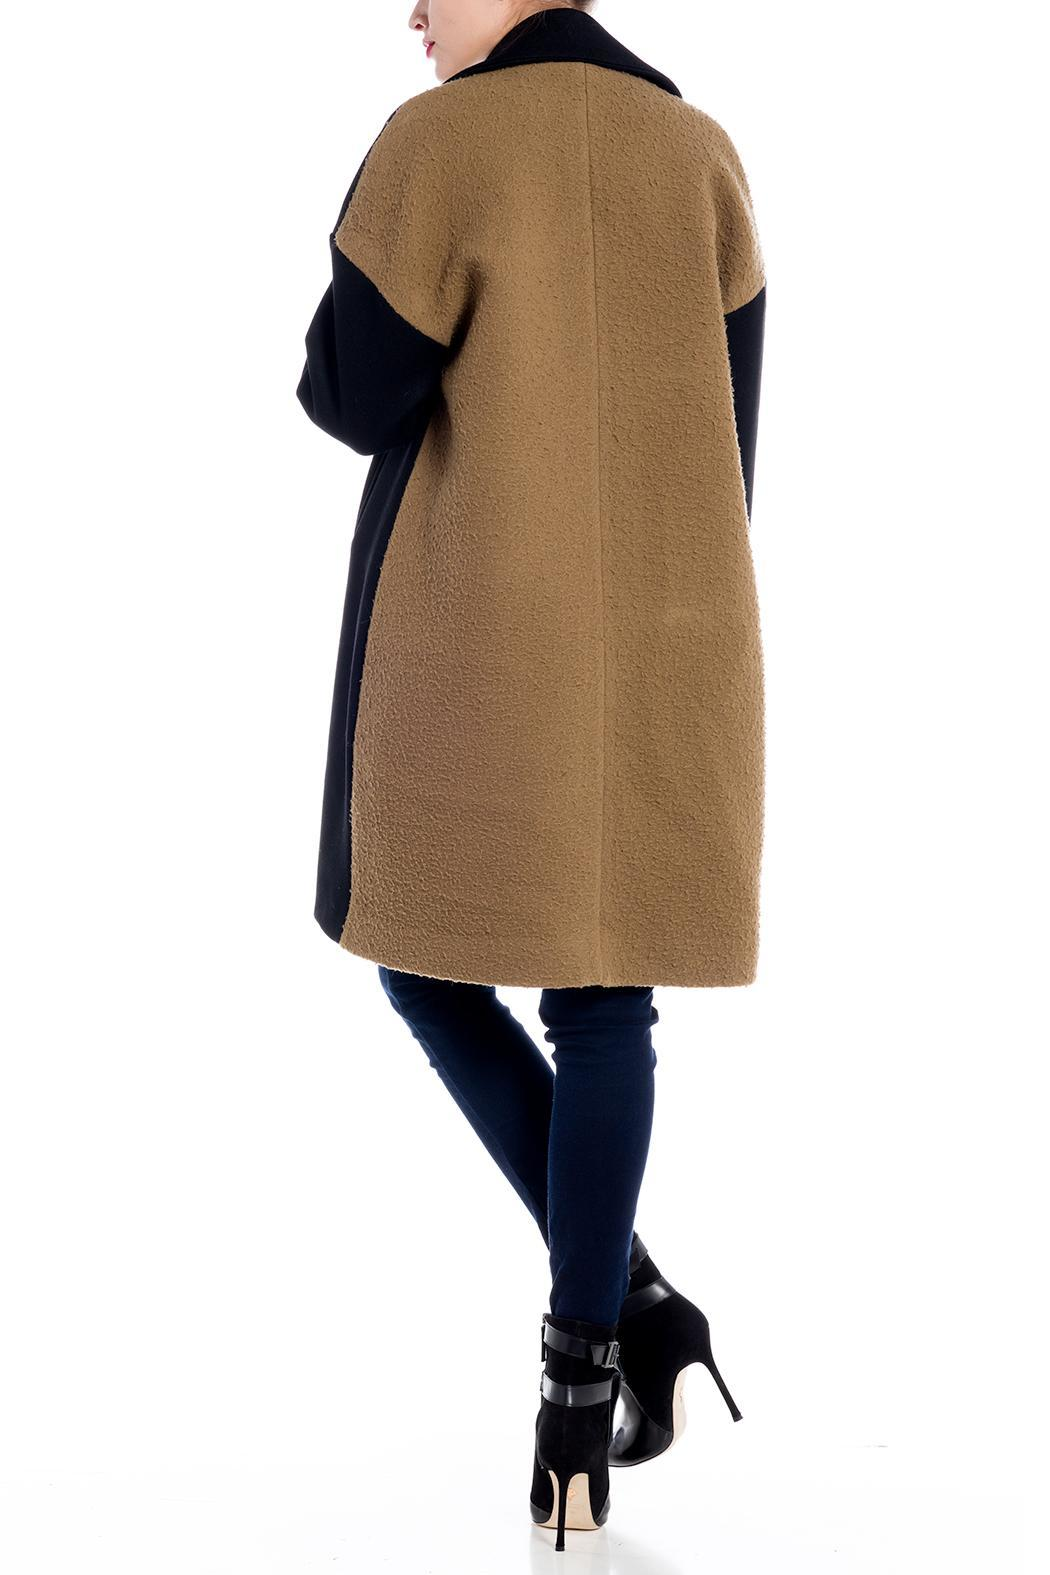 Charlie May Wool Felt Trench Coat - Side Cropped Image